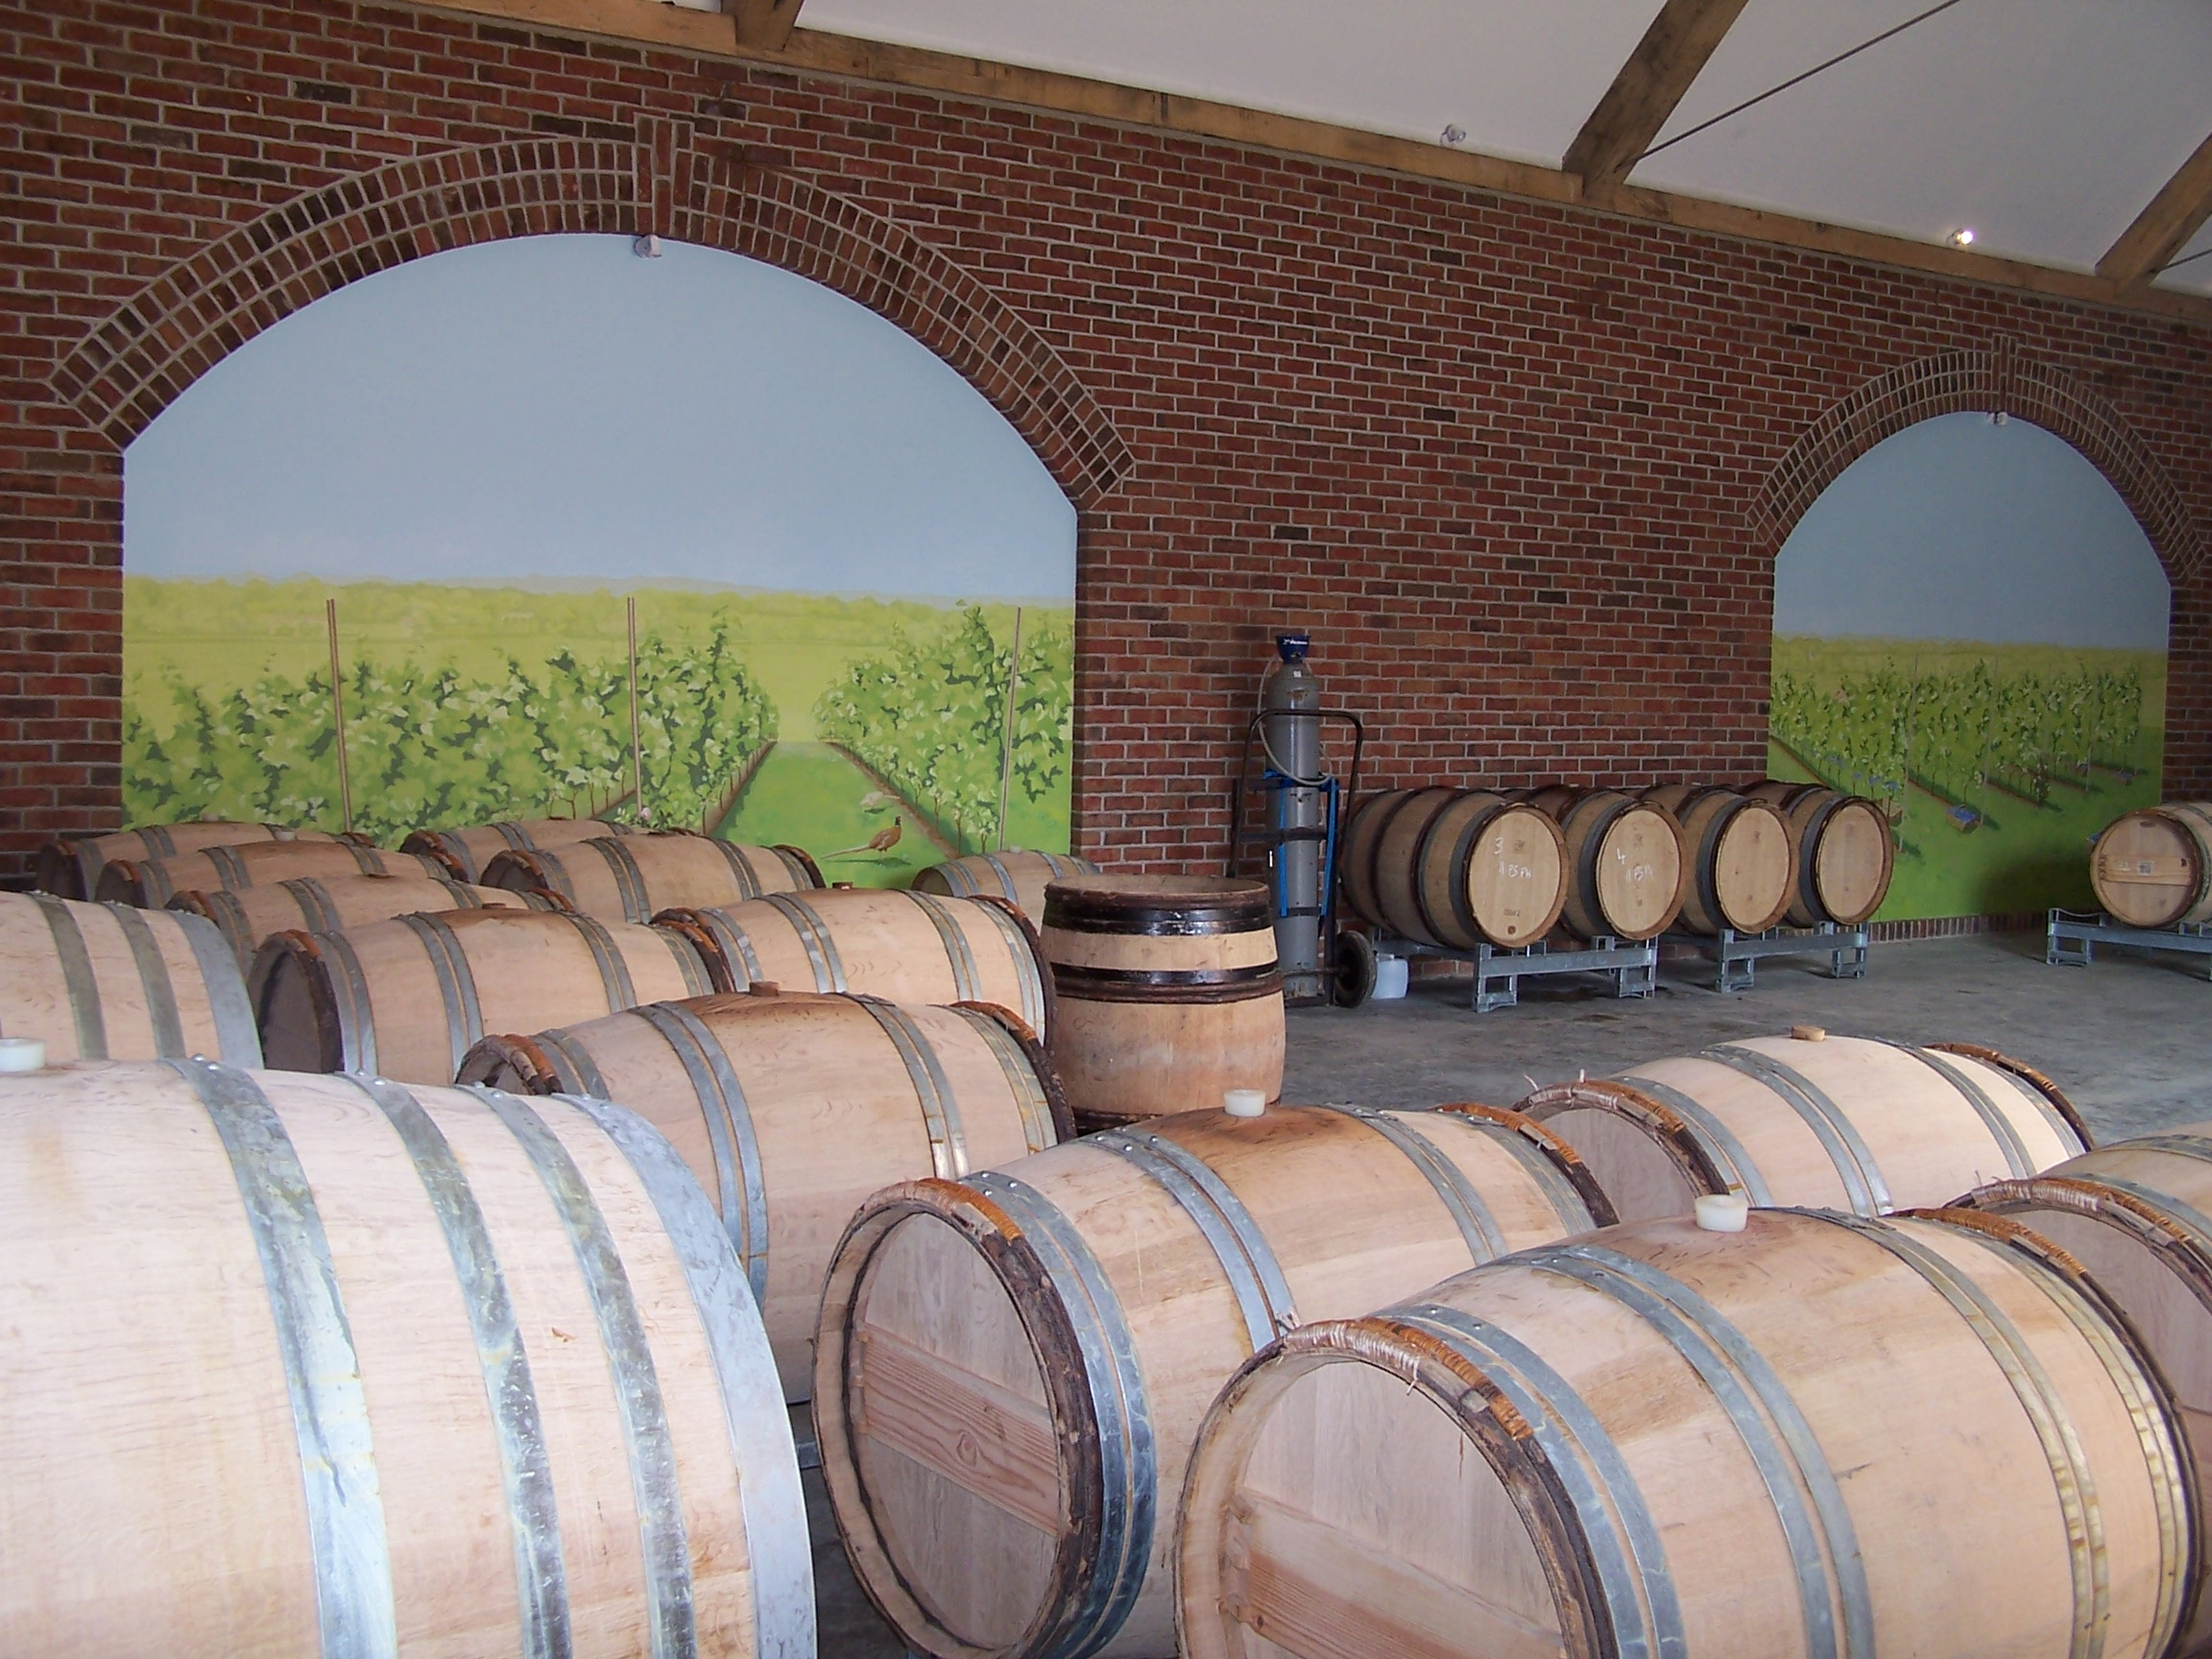 6. Barrel Fermentation - Each barrel is inoculated with yeast for fermentation and kept in temperature-controlled storage.